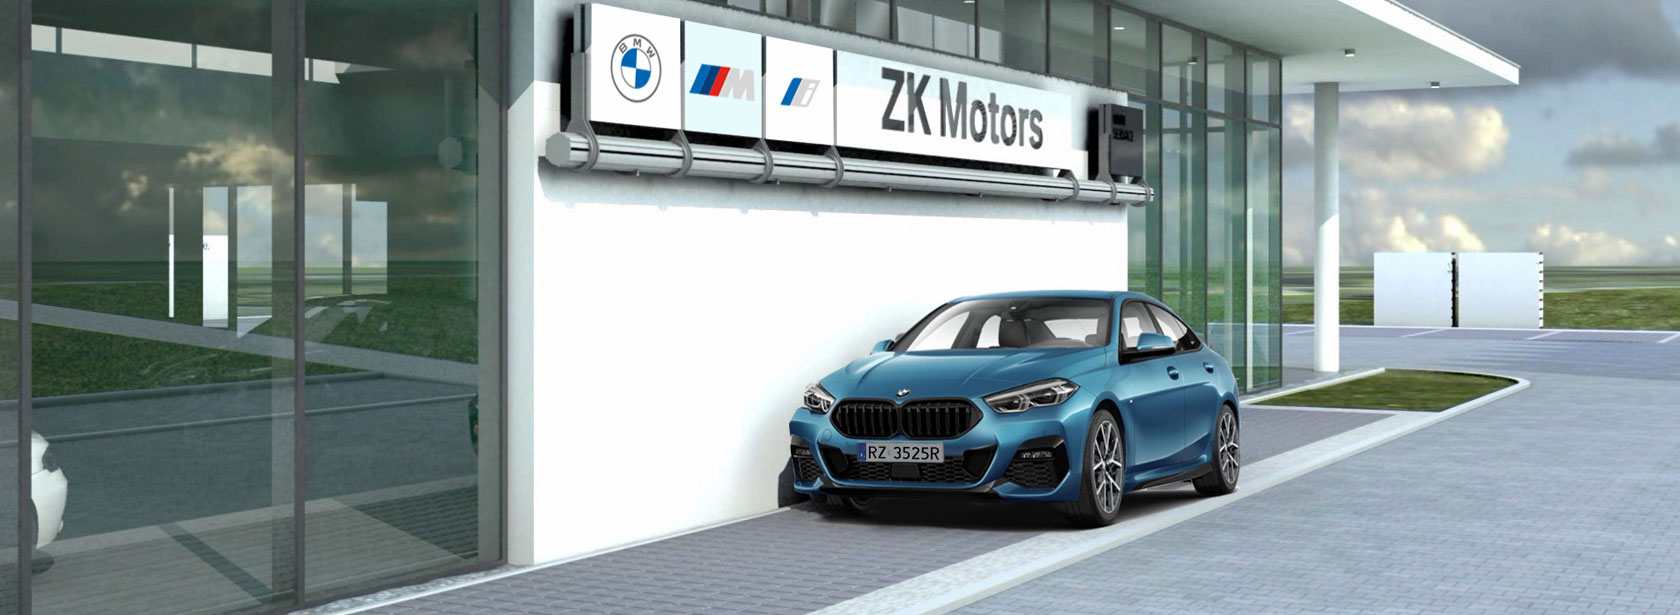 Dealer BMW ZK Motors Rzeszów. Salon BMW.